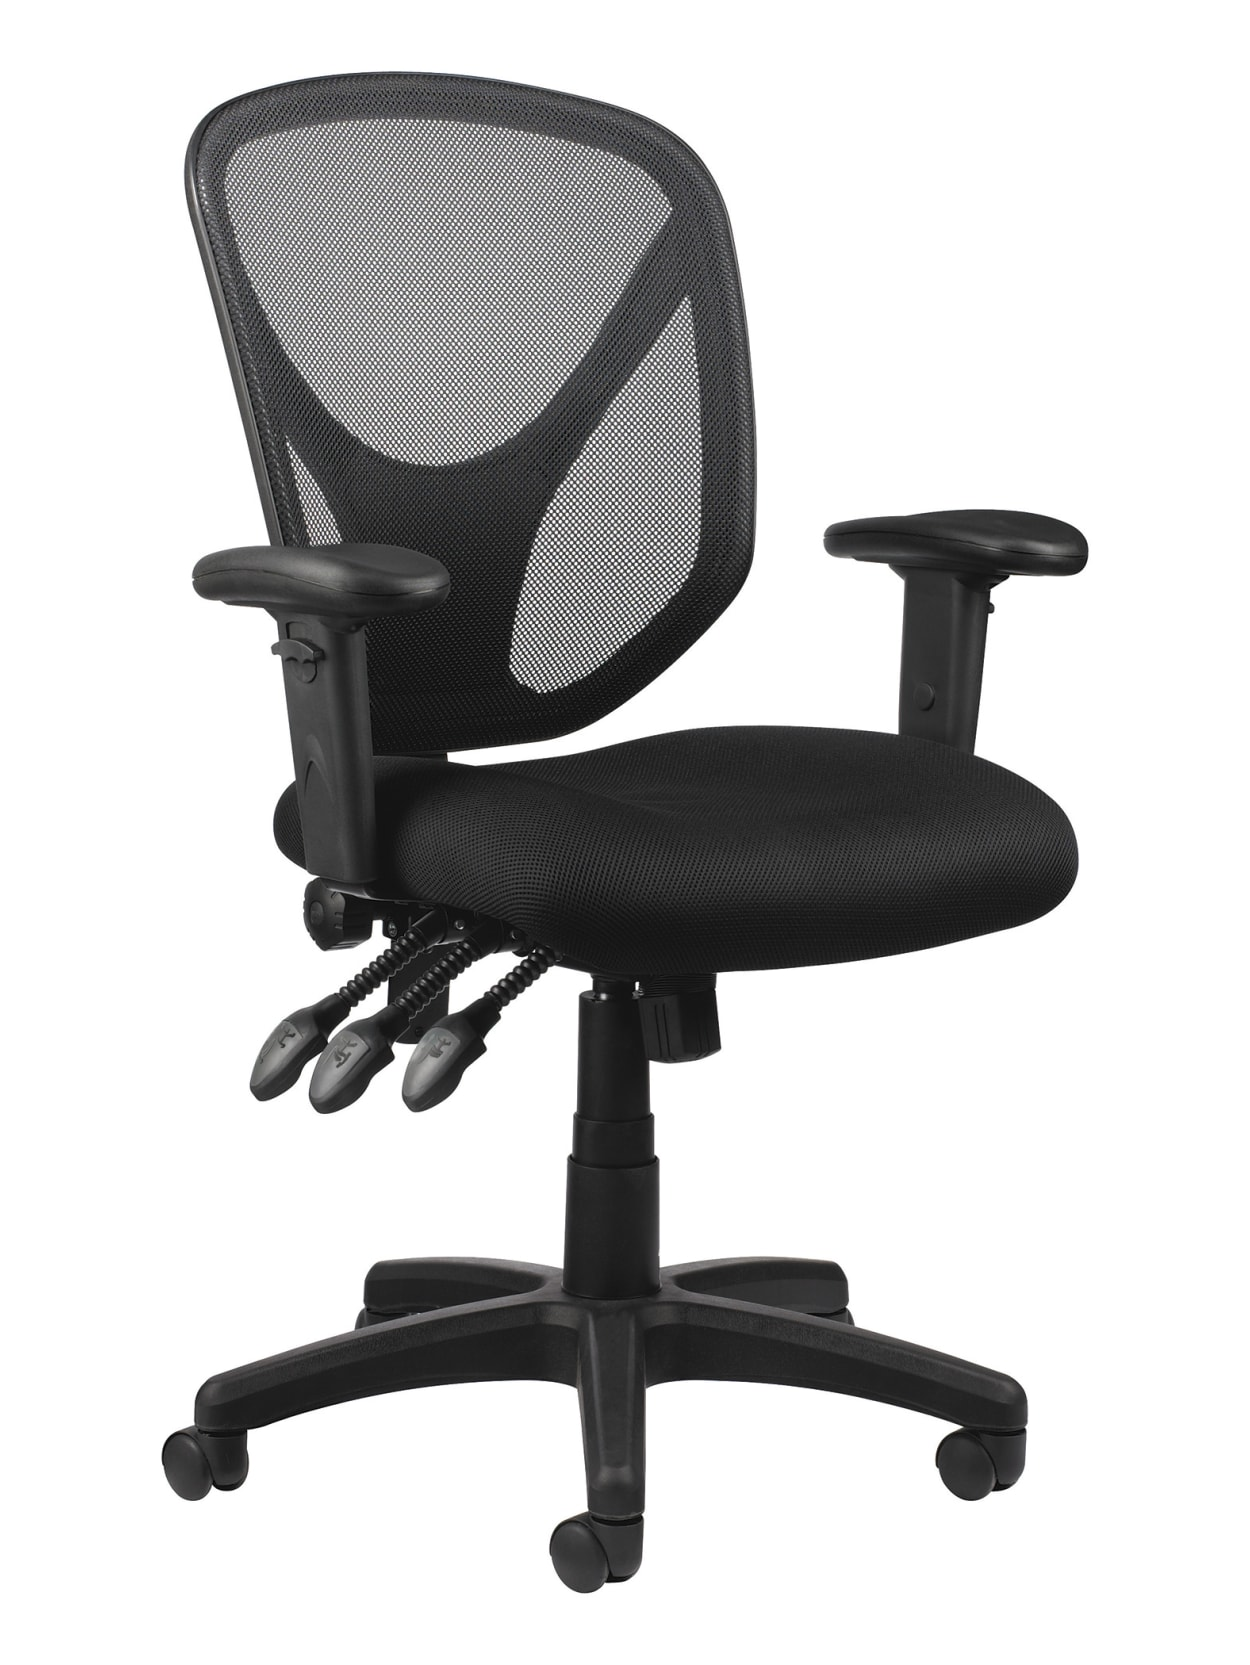 Reale Mftc 200 Task Chair Black